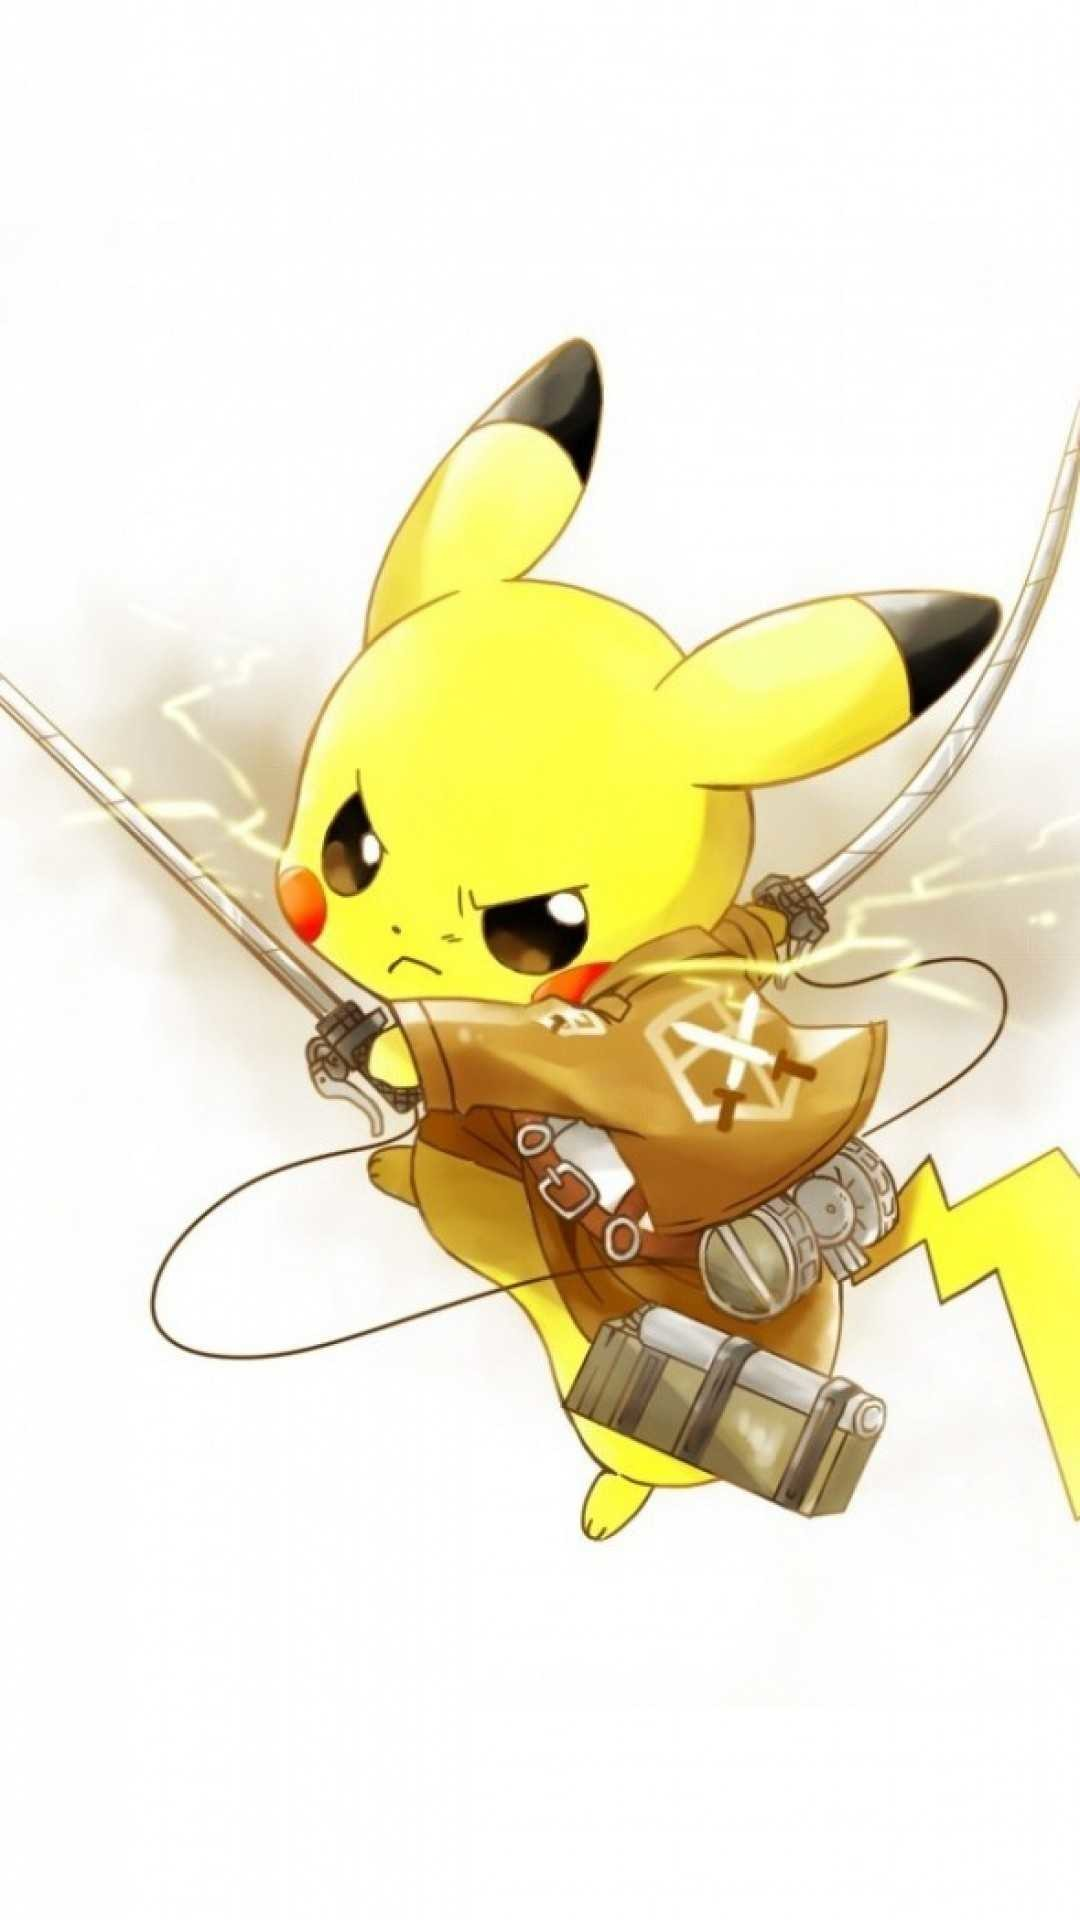 Res: 1080x1920, Full Hd For Pikachu Iphone Cute Pokemon Wallpaper High Quality Mobile Phones